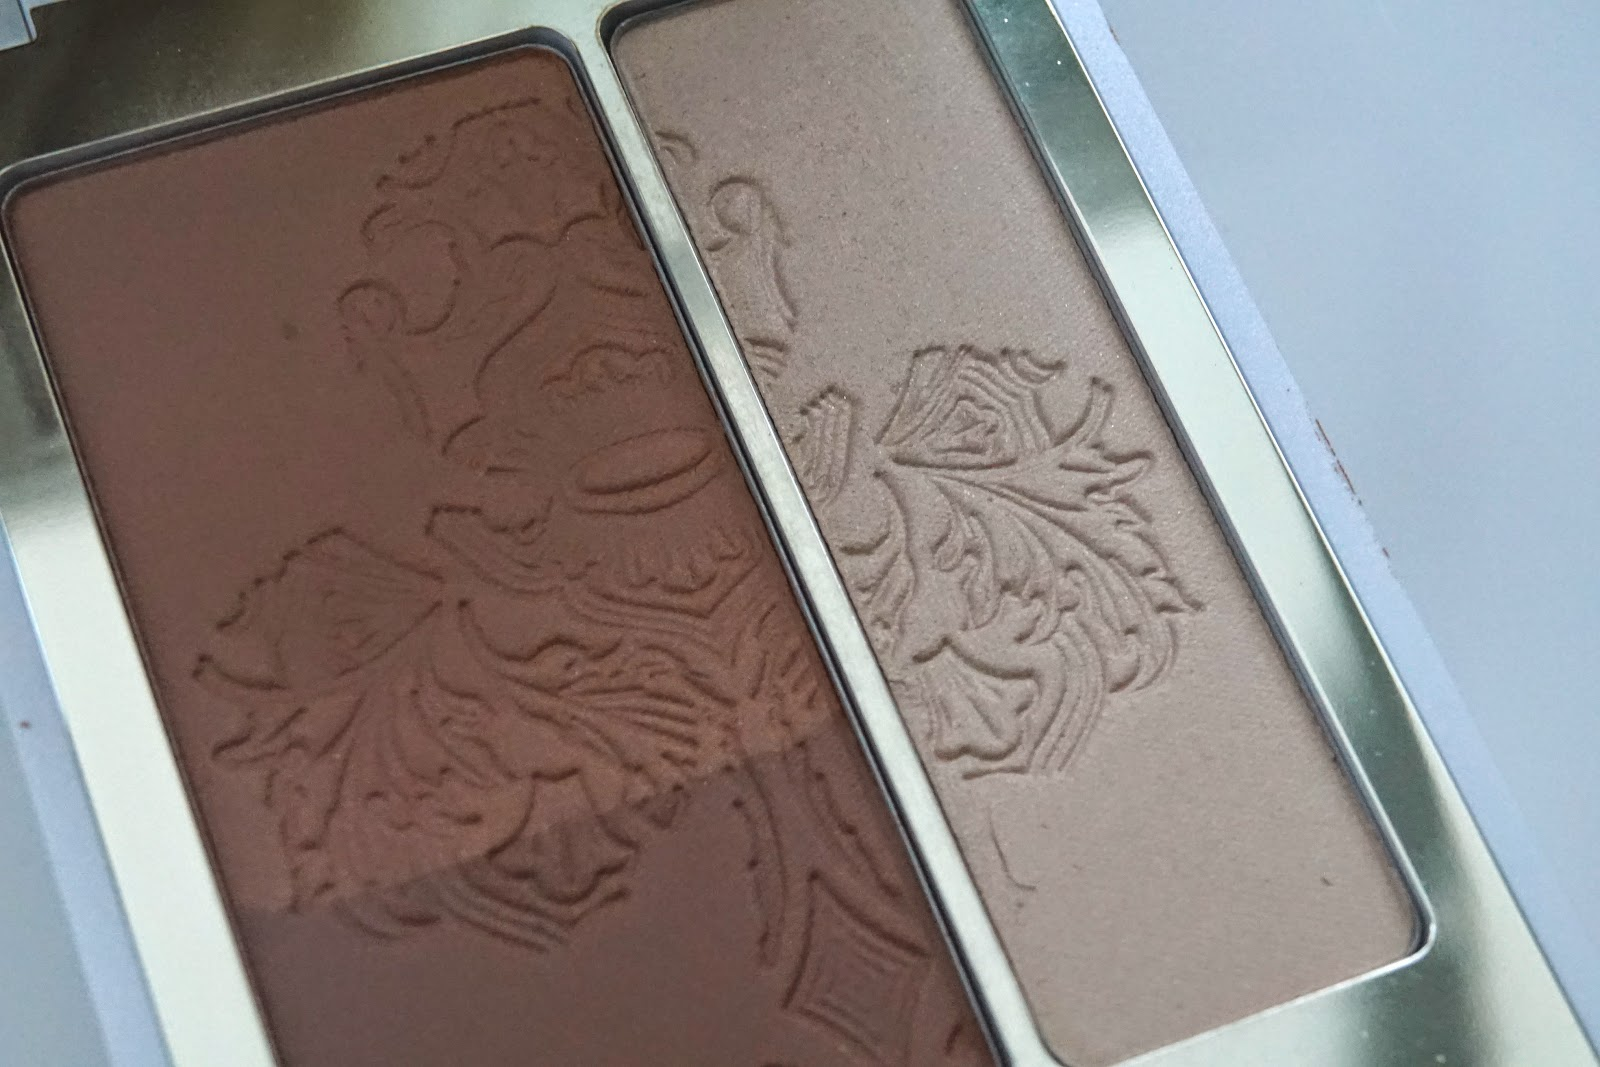 Golden Game sculpting bronzer Kiko